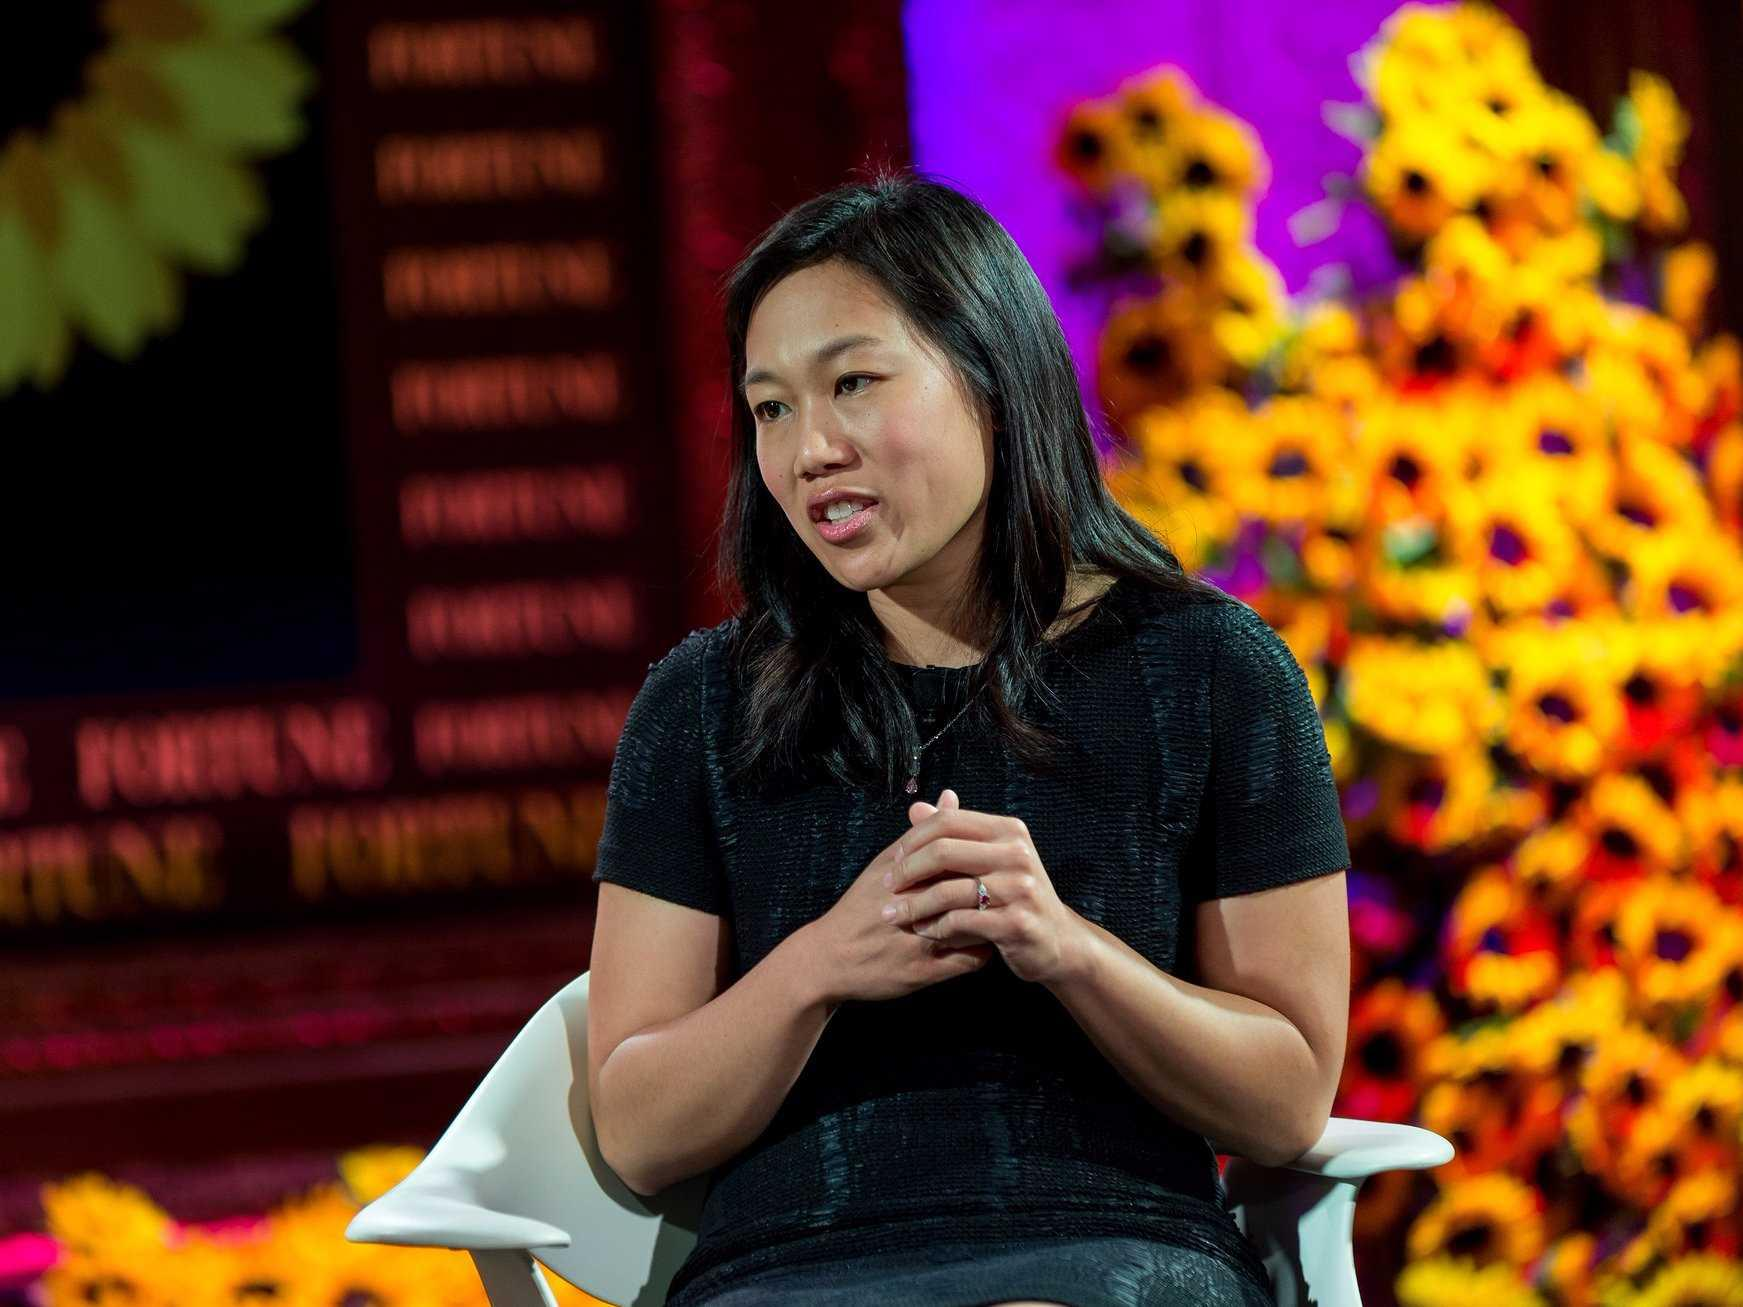 Priscilla Chan explains what it's like to work alongside her